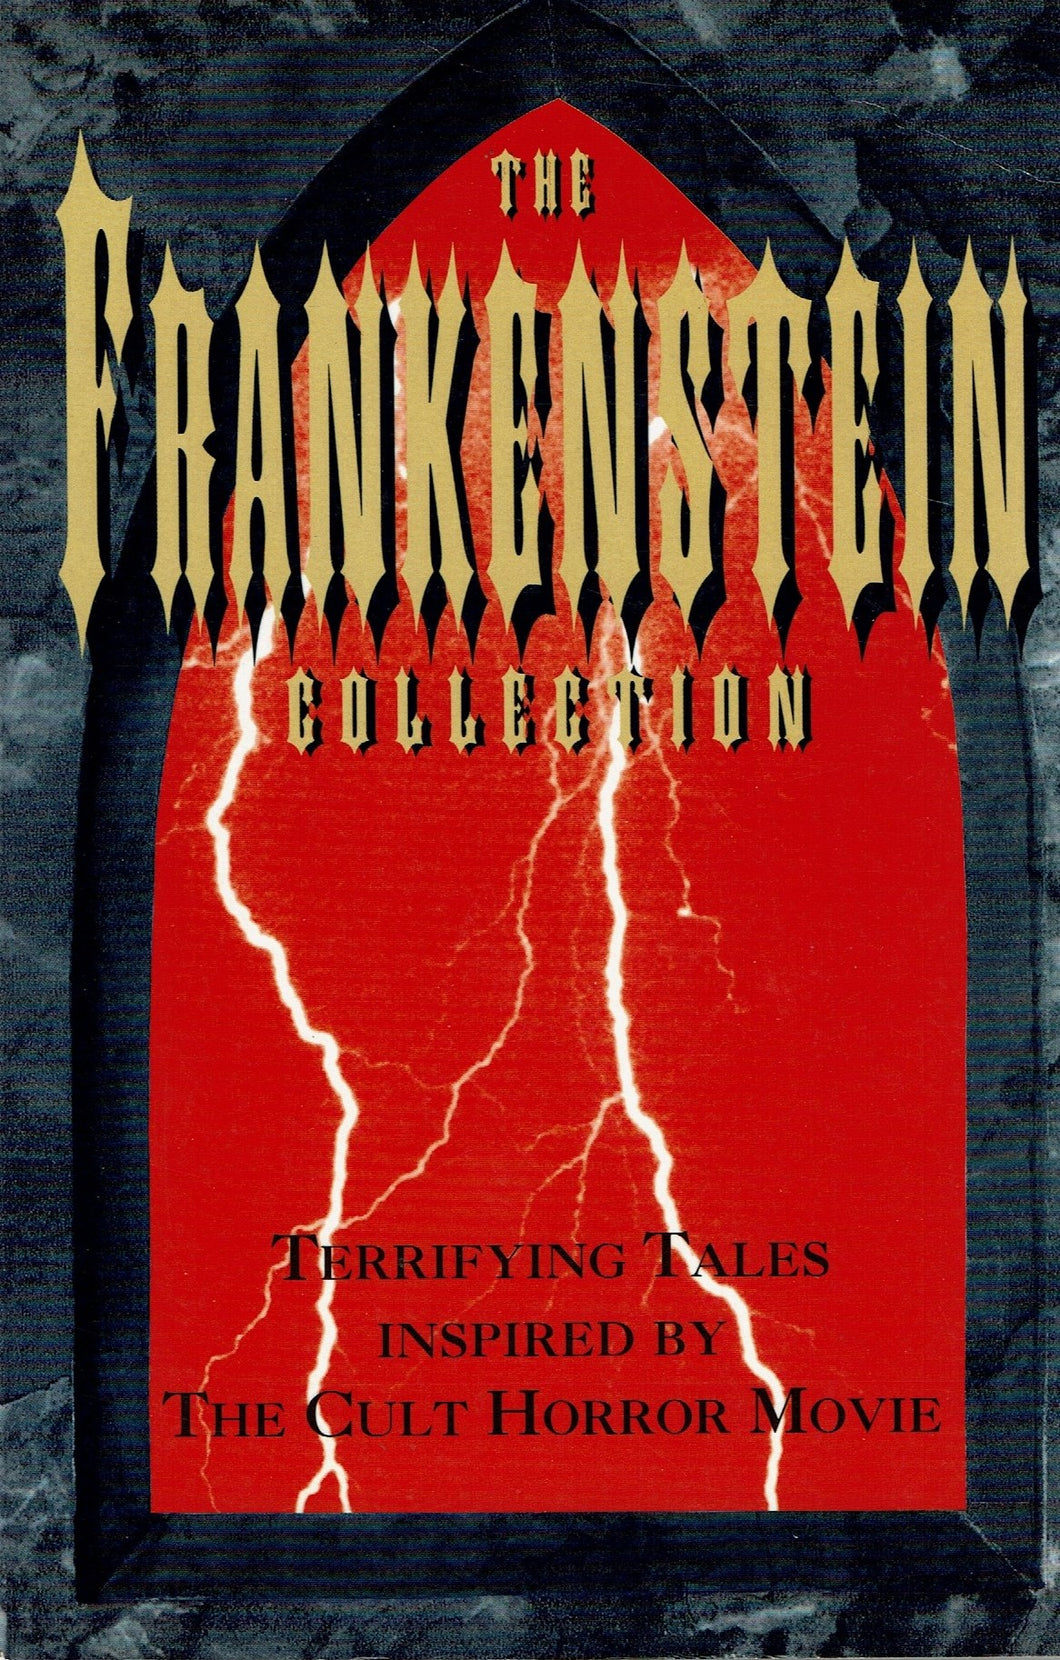 The Frankenstein Collection by Peter Haining (ed)